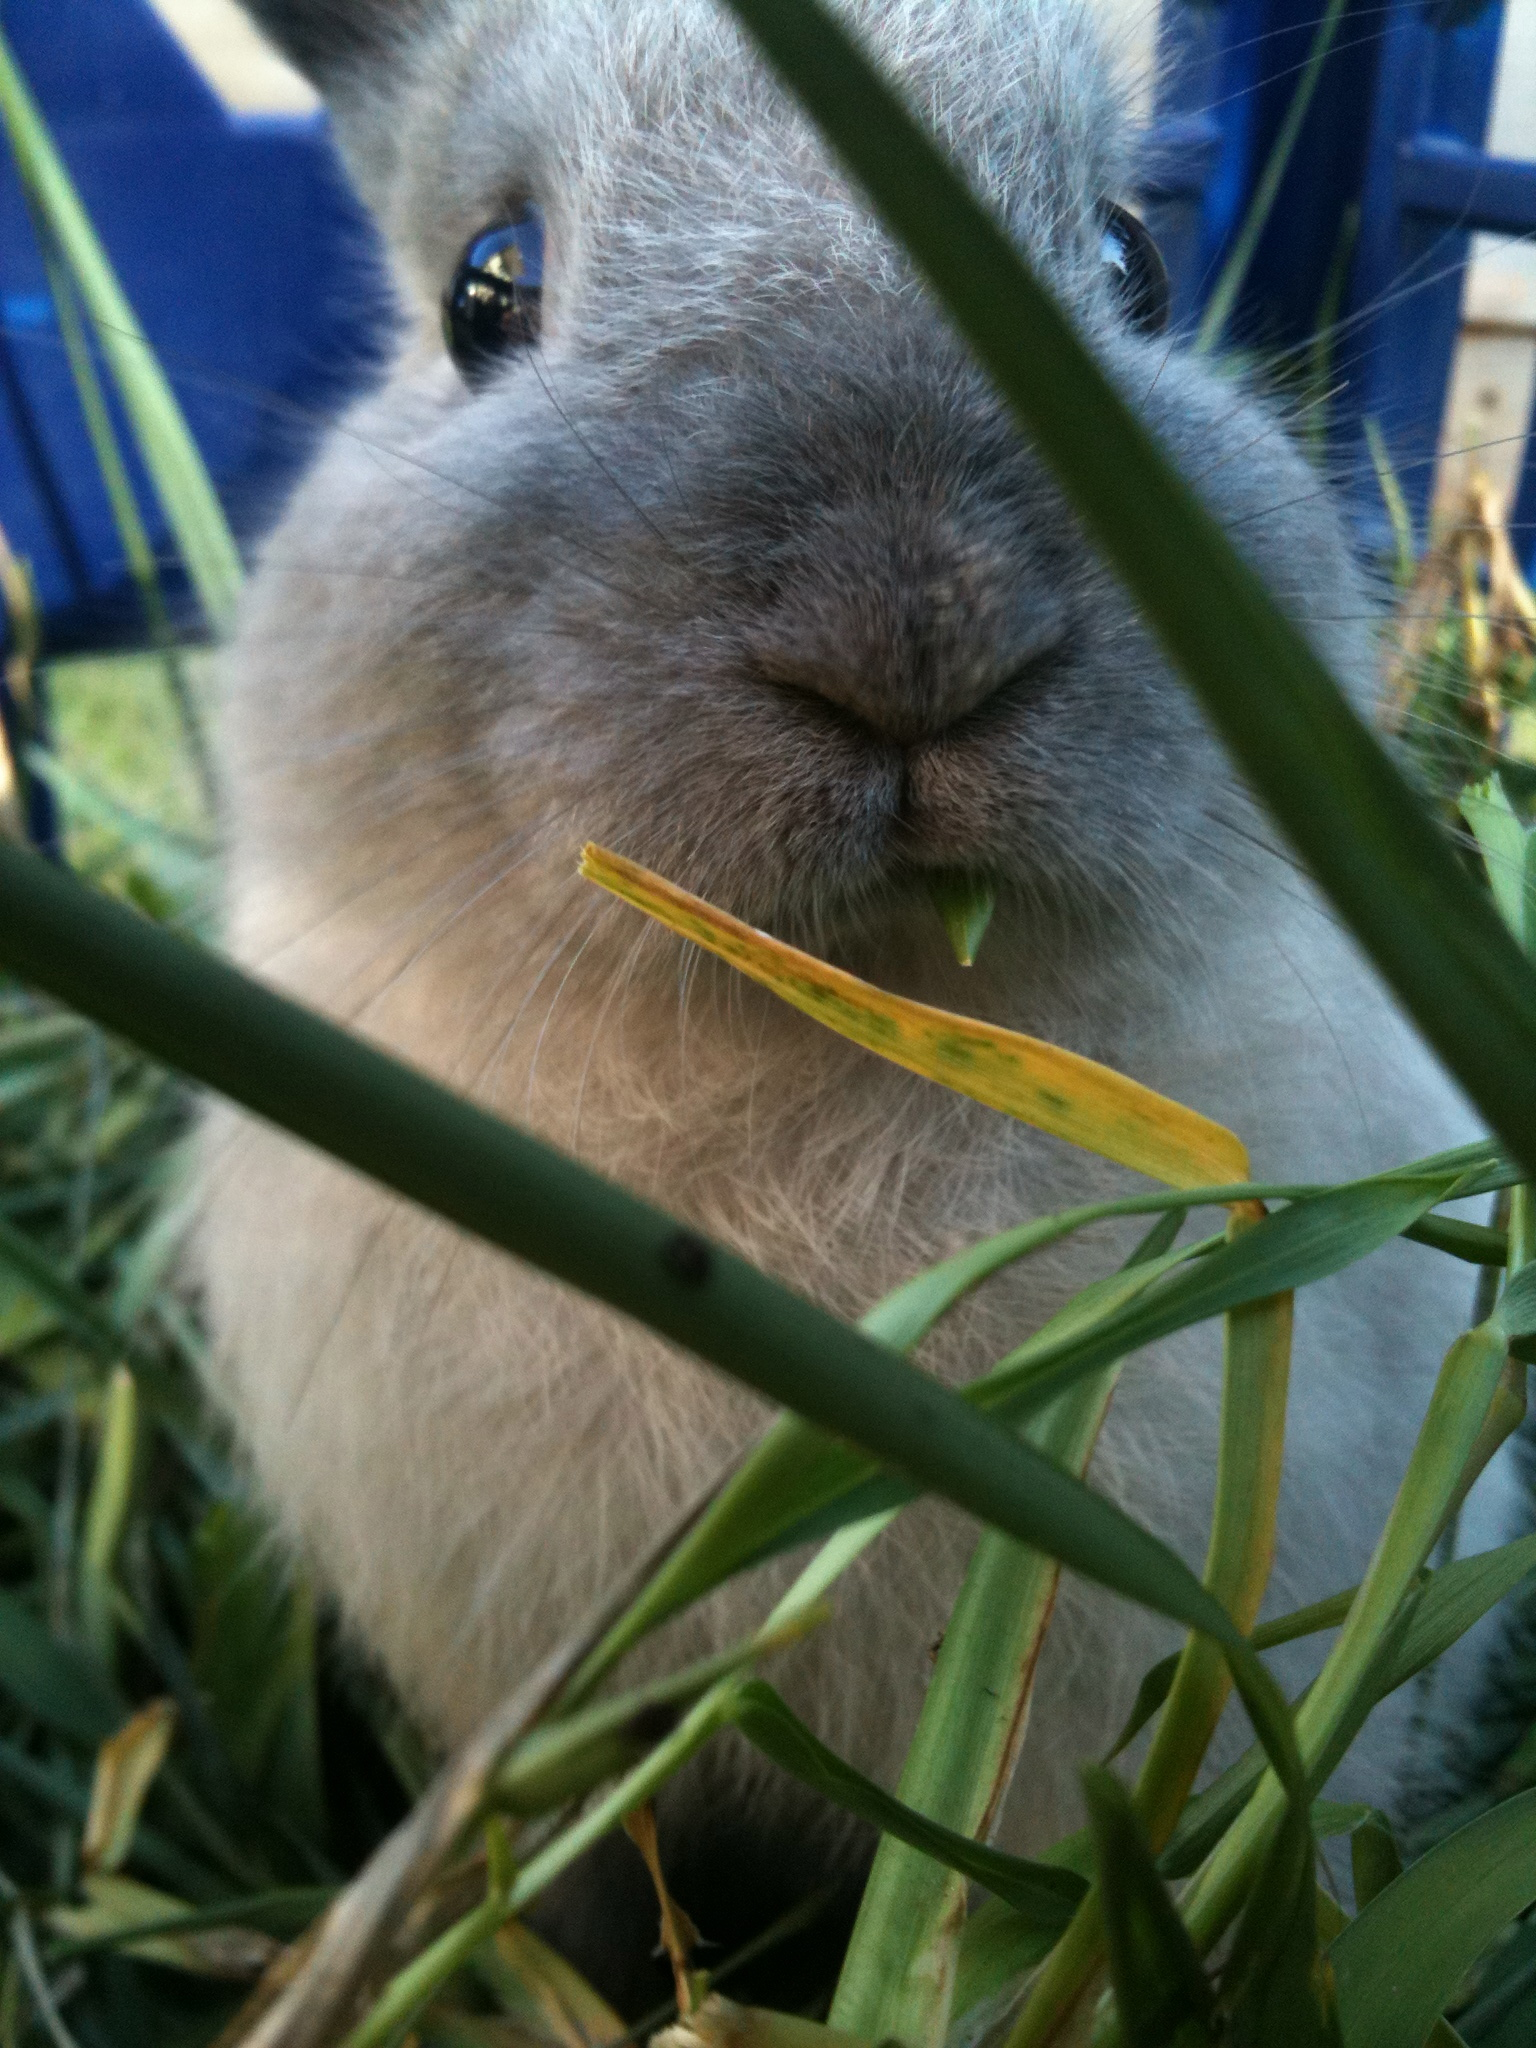 Bunny, You Have a Blade of Grass in Your Teeth